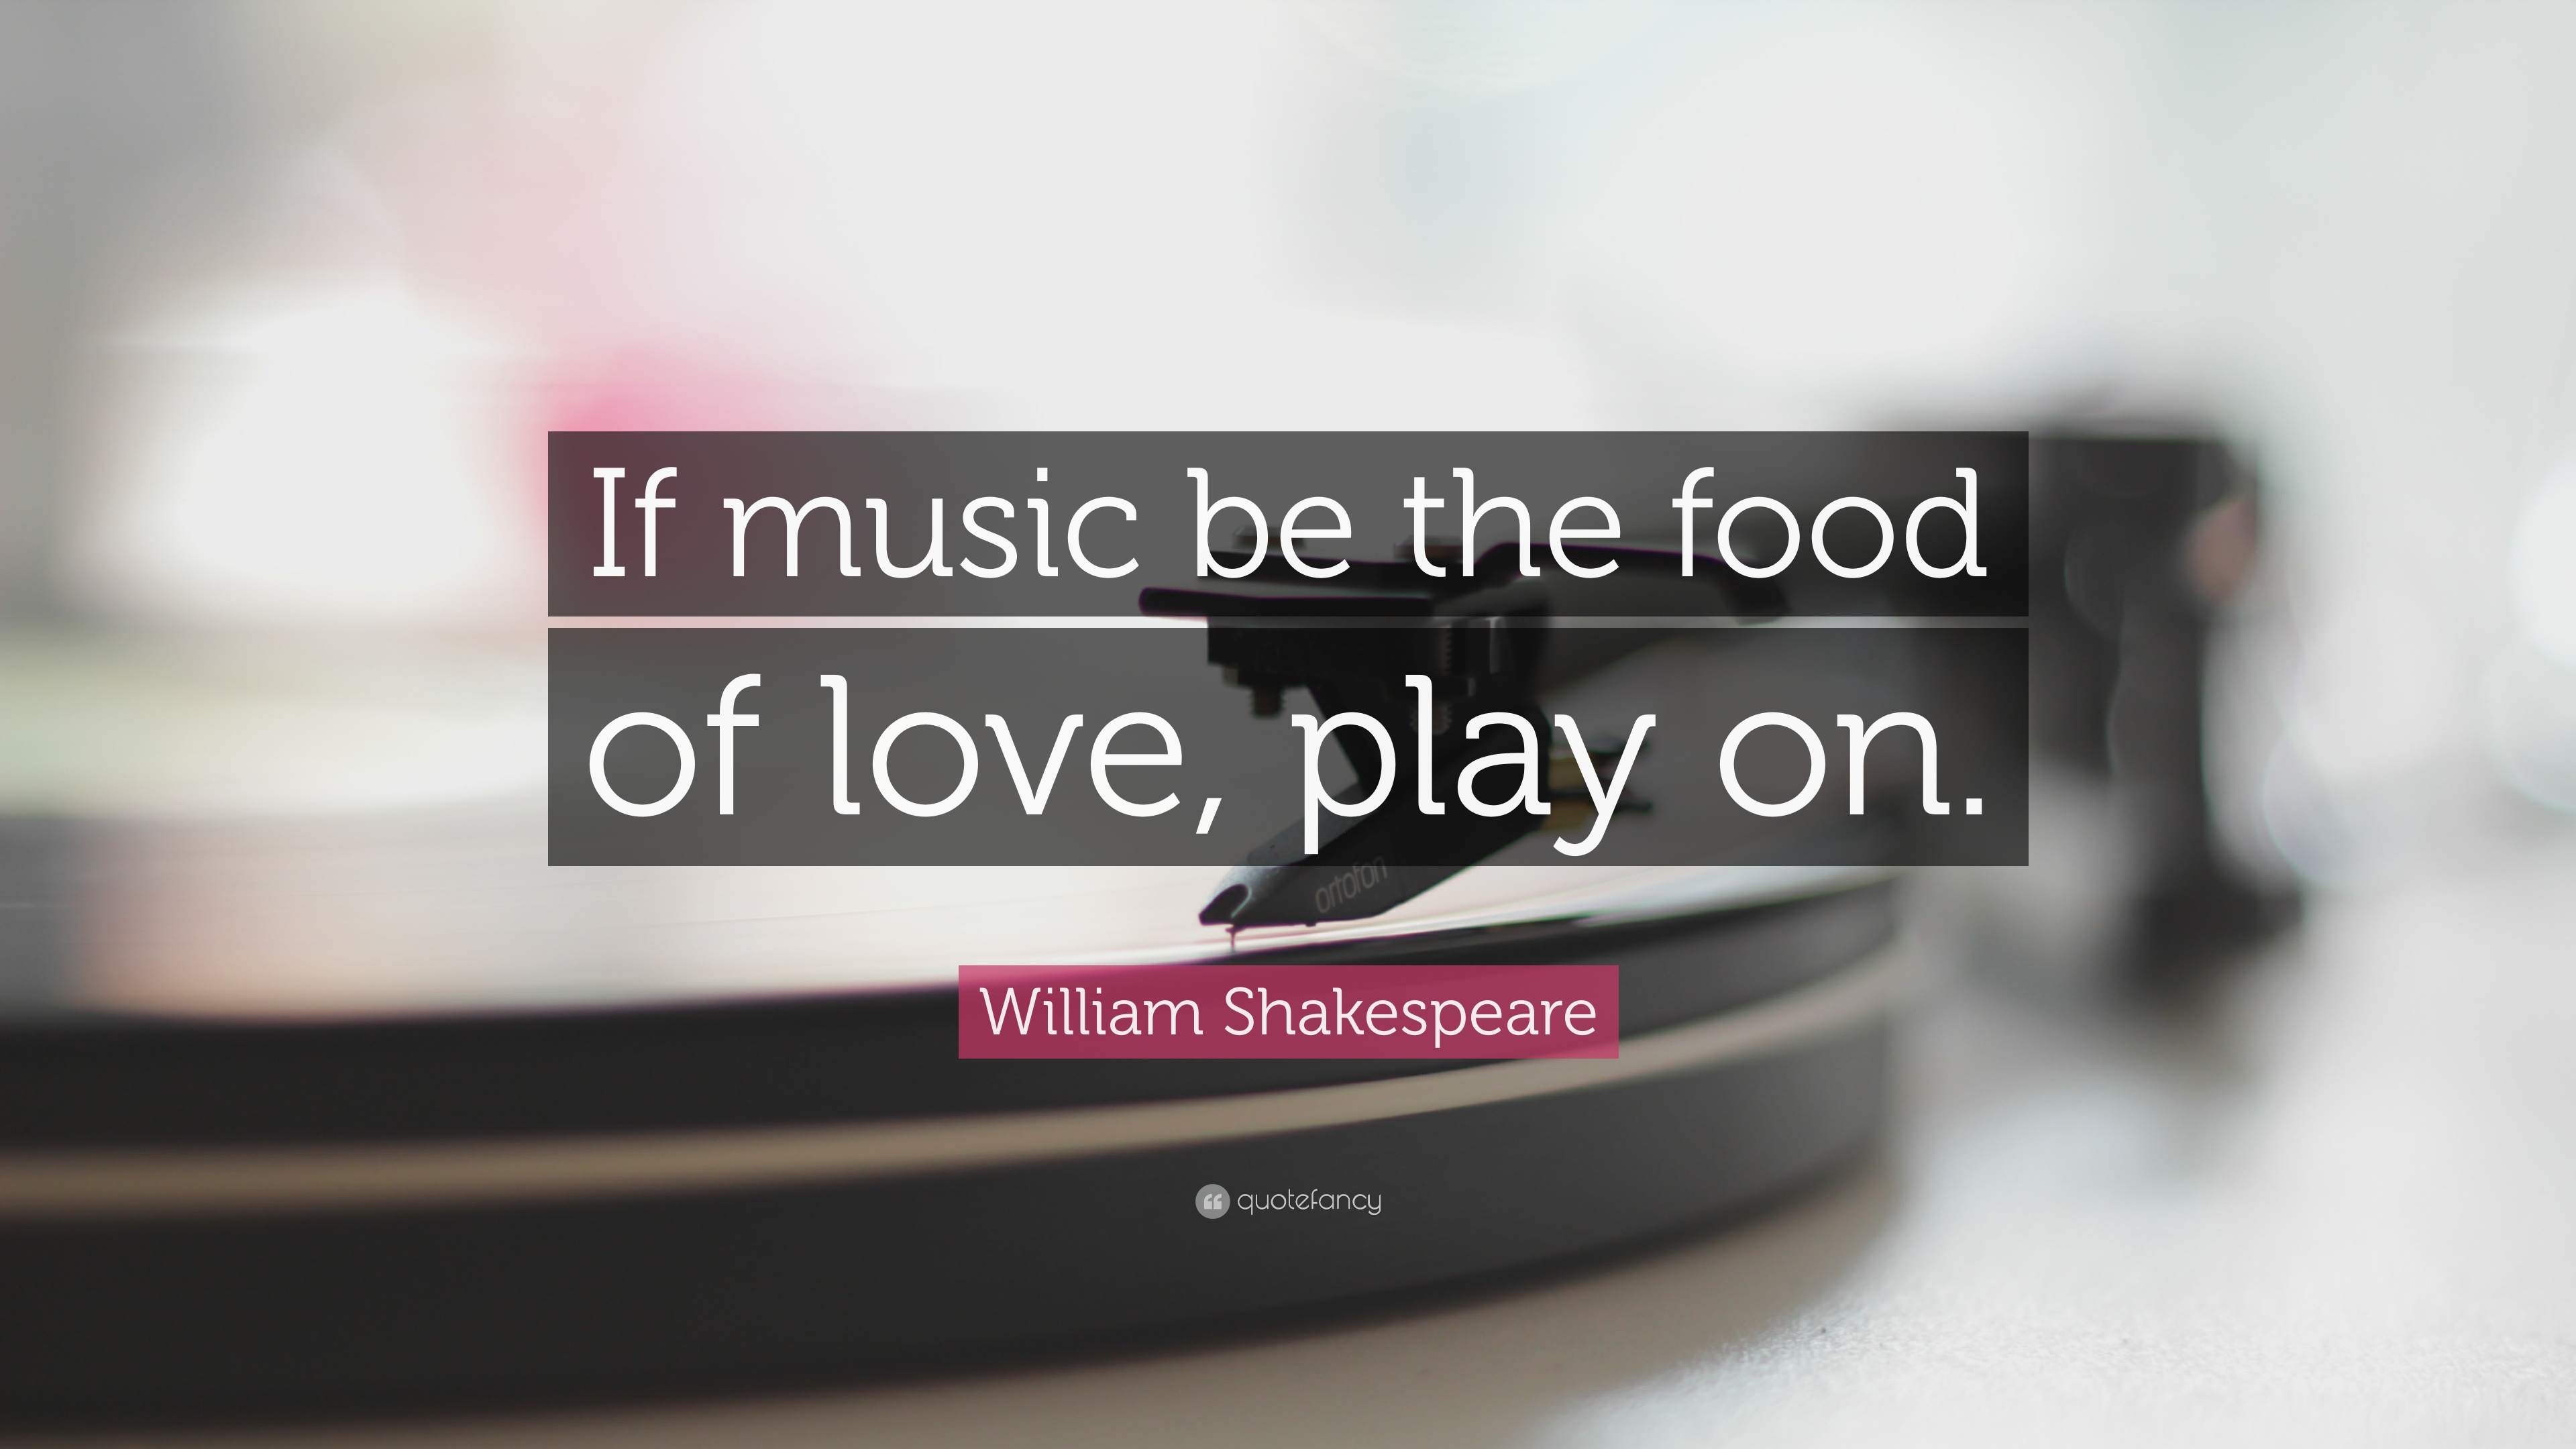 Download Wallpaper Music Food - 28265-William-Shakespeare-Quote-If-music-be-the-food-of-love-play-on  Gallery_90579.jpg